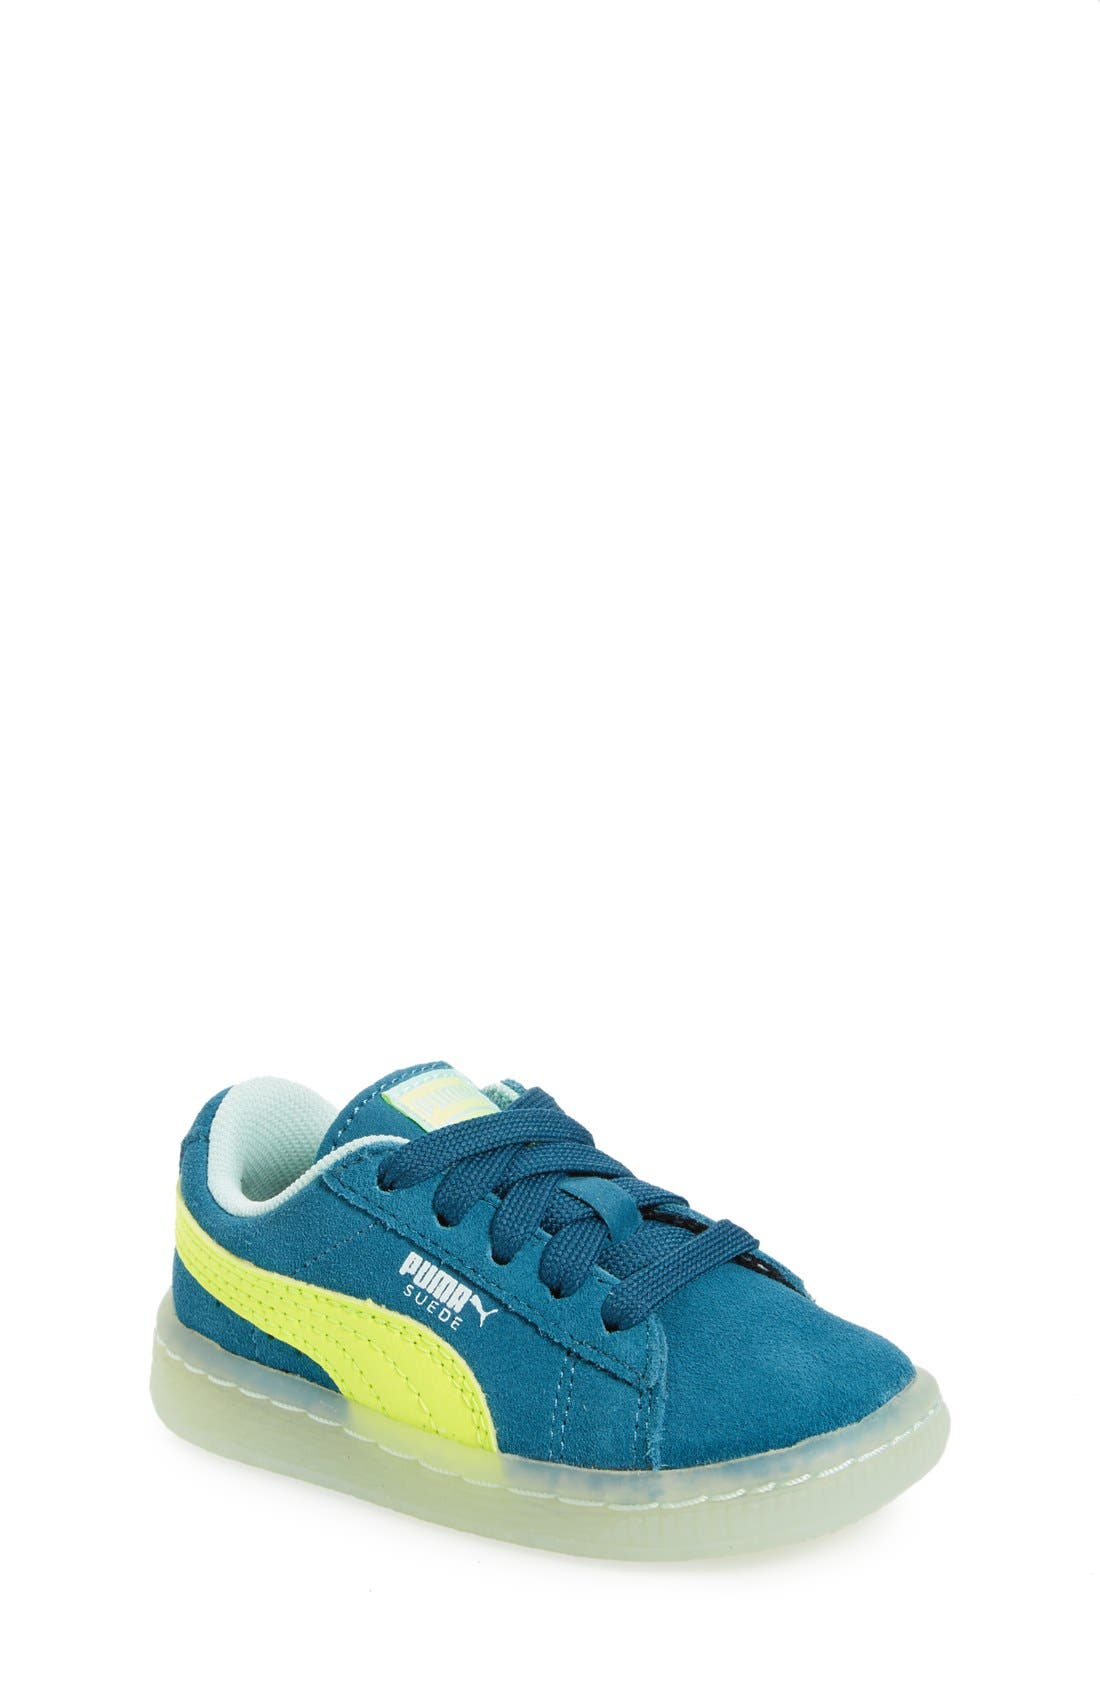 PUMA Iced Sneaker (Baby, Walker & Toddler)